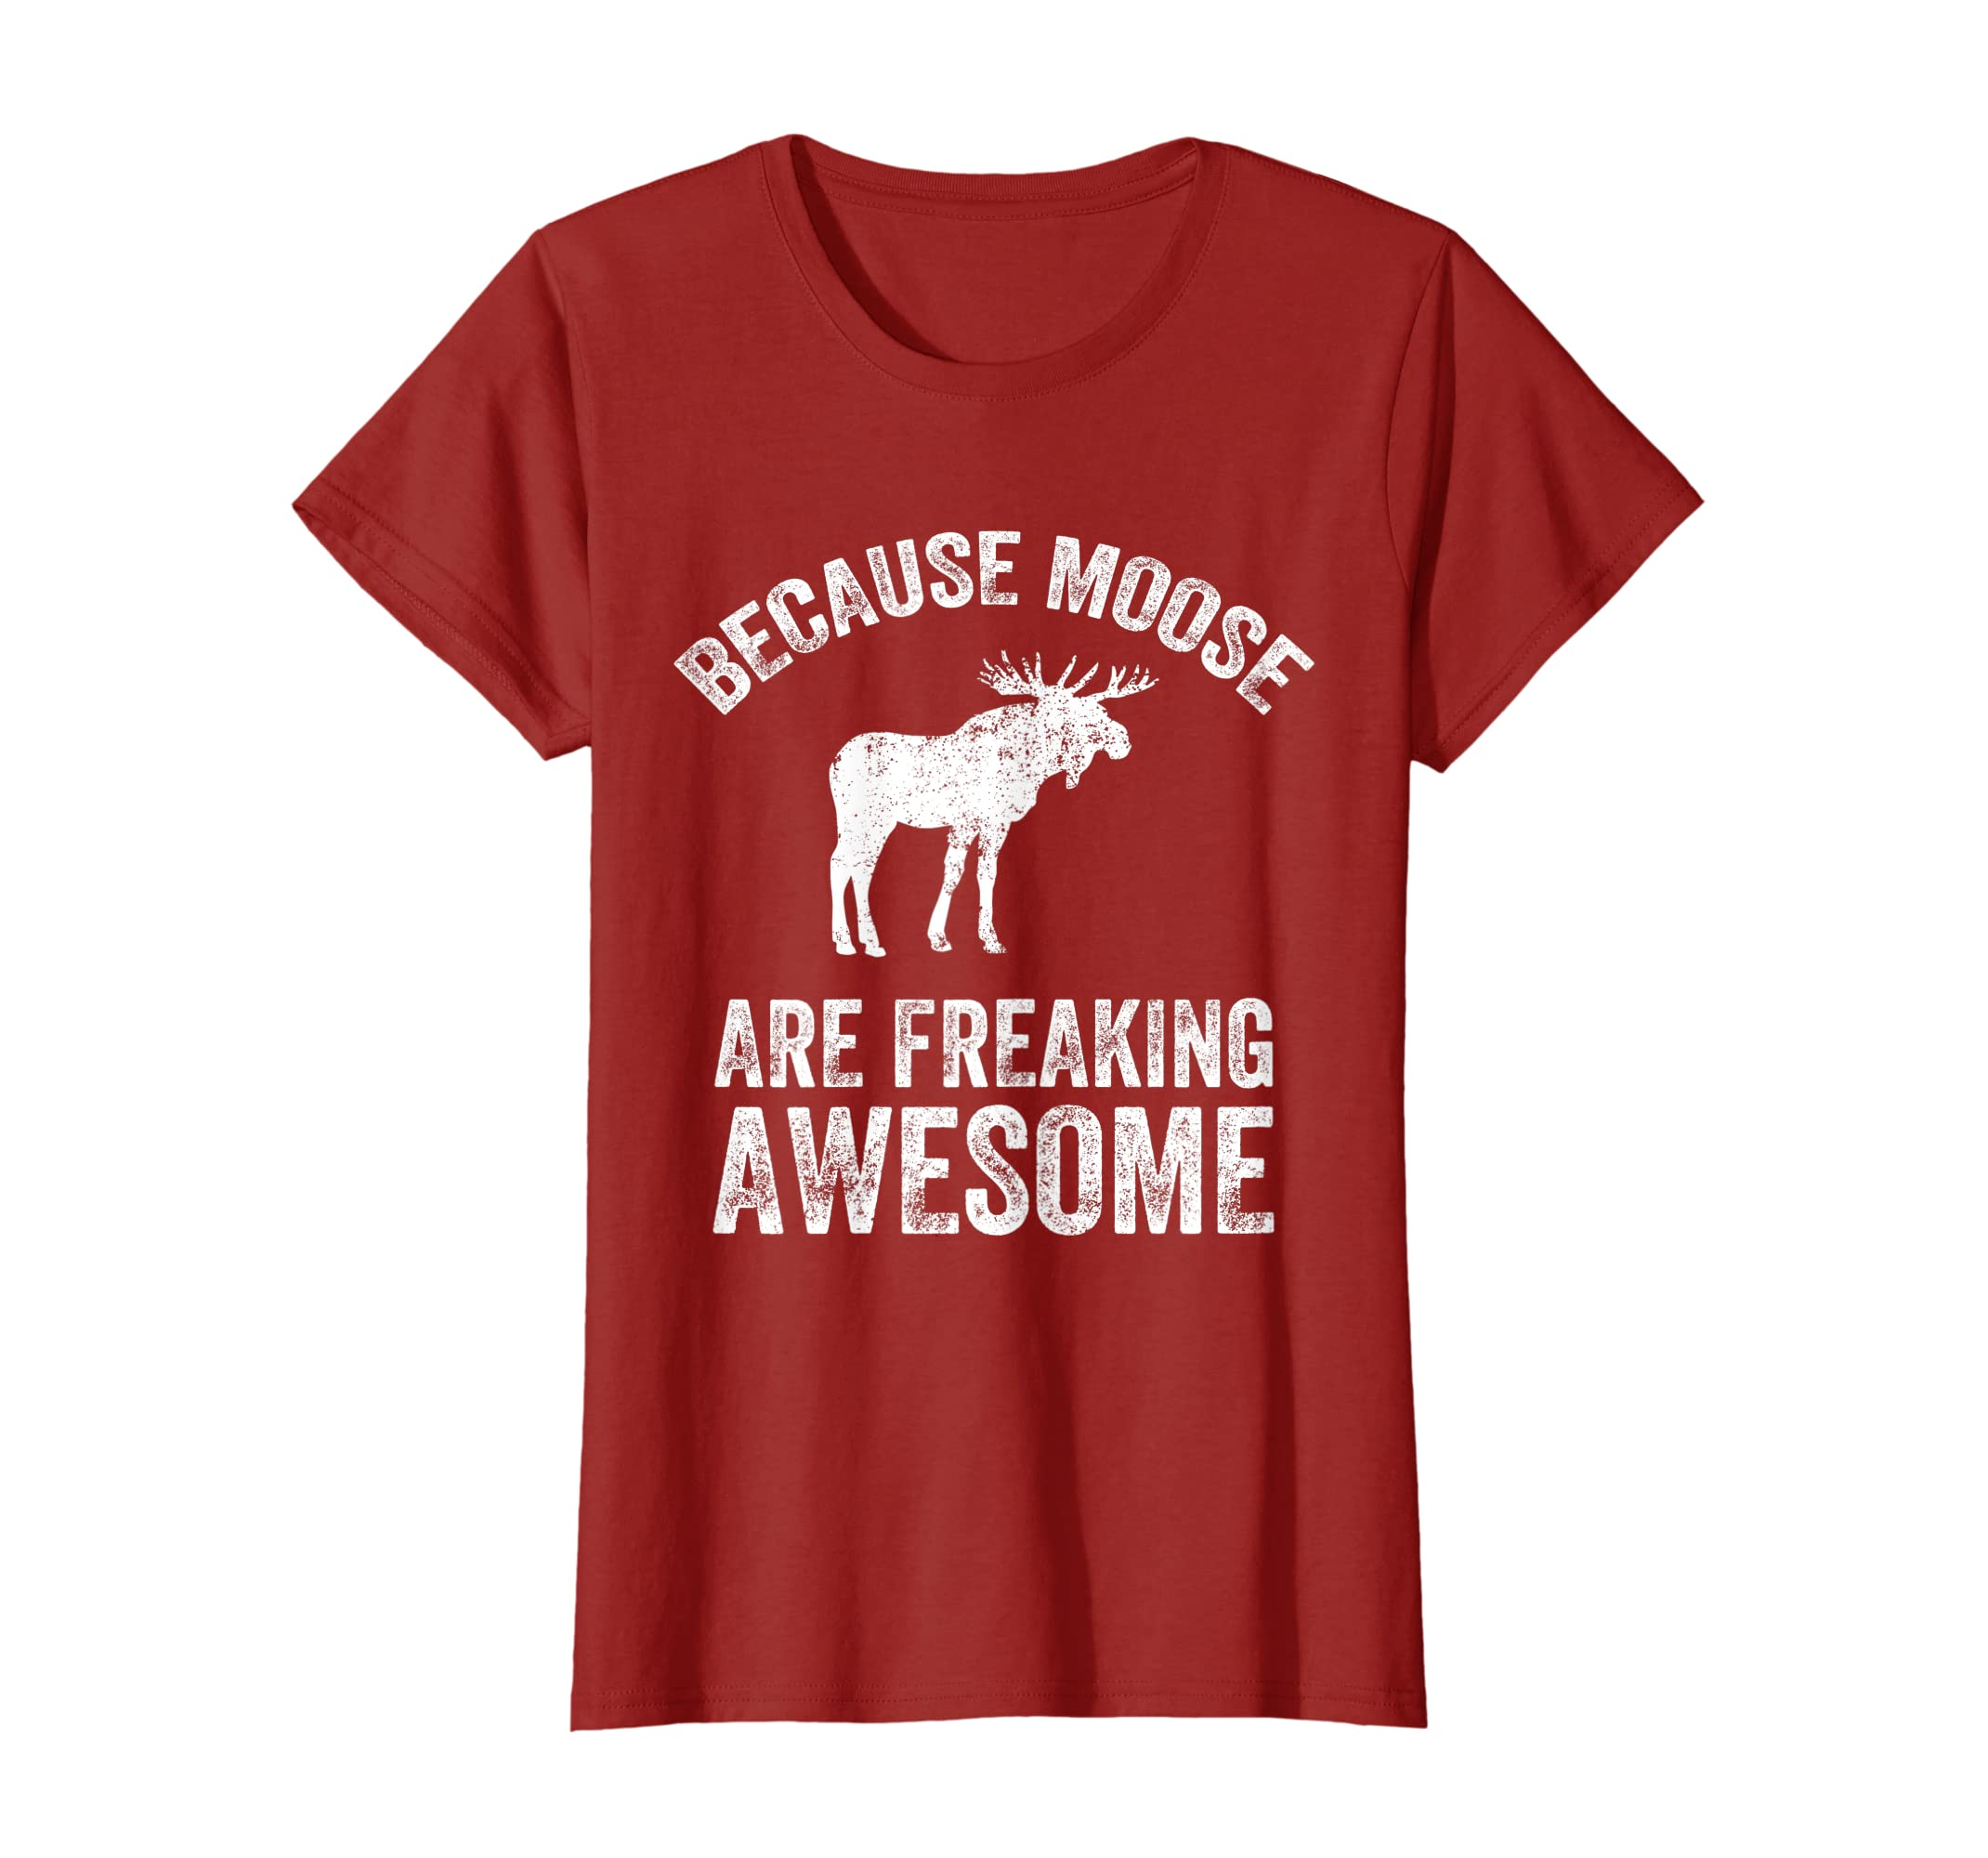 8a6e21dc51 Amazon.com: Because Moose Are Freaking Awesome T-Shirt - Funny Moose Tee:  Clothing